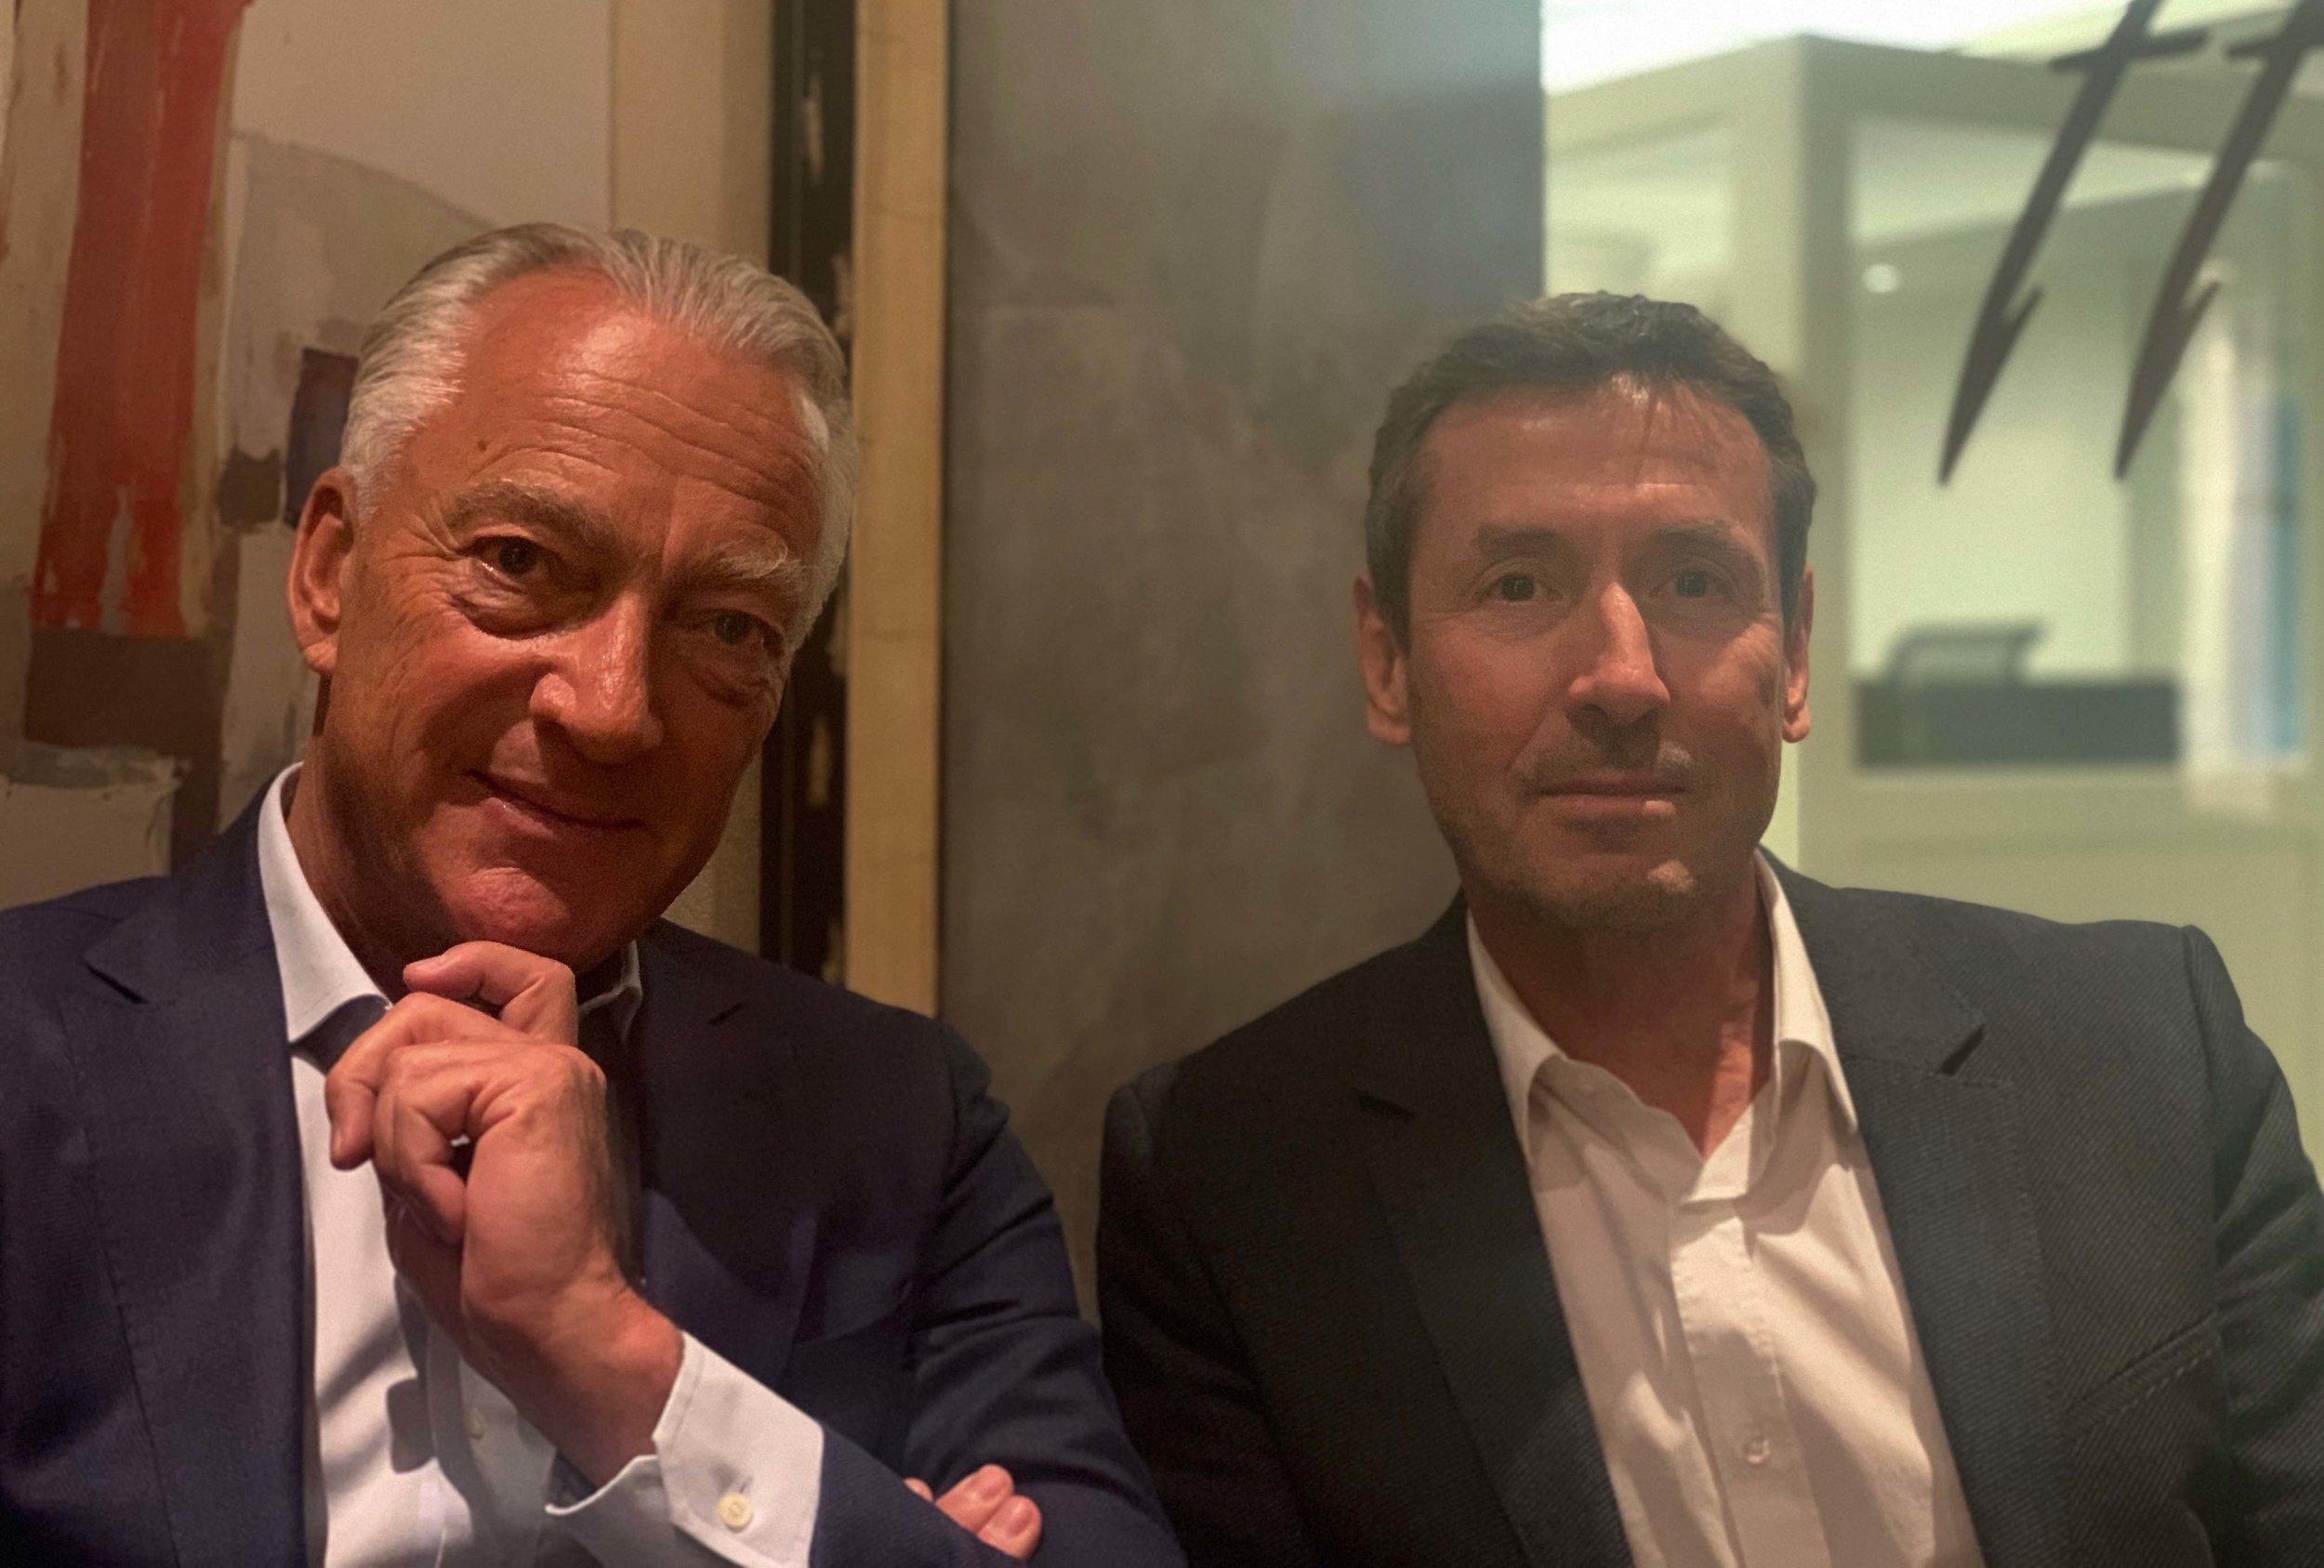 The two primary individuals behind the company are Pierre-Antoine Racine CEO (left), and Pierre Bourquin, head of the legal department (right).